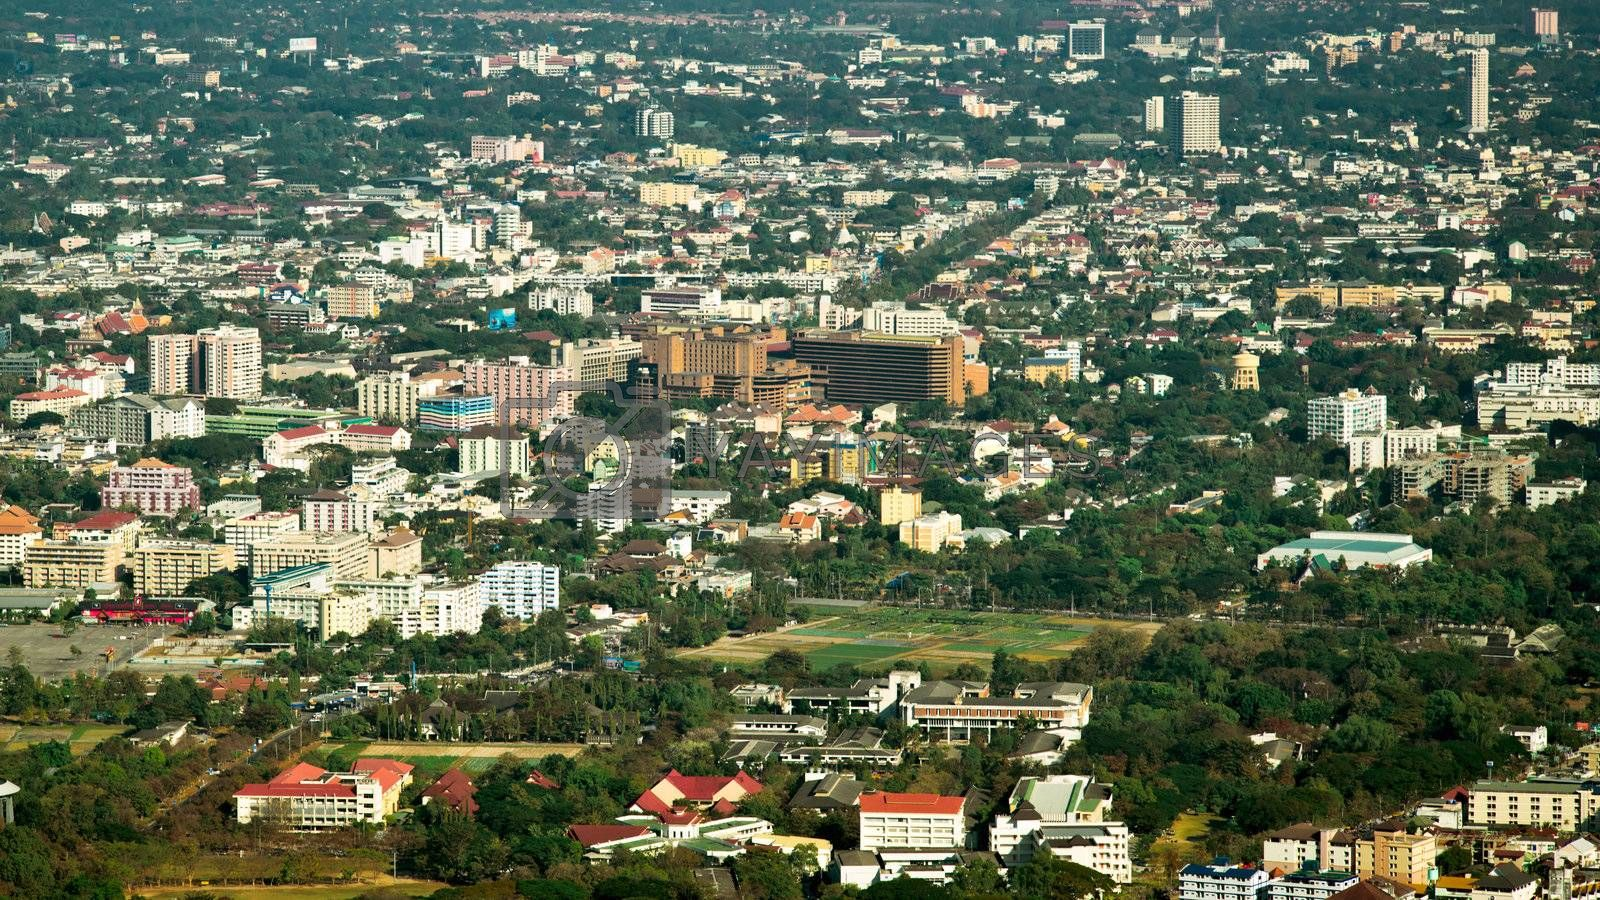 View of Chiang Mai city from viewpoint on Doi Suthep, Northern Thailand